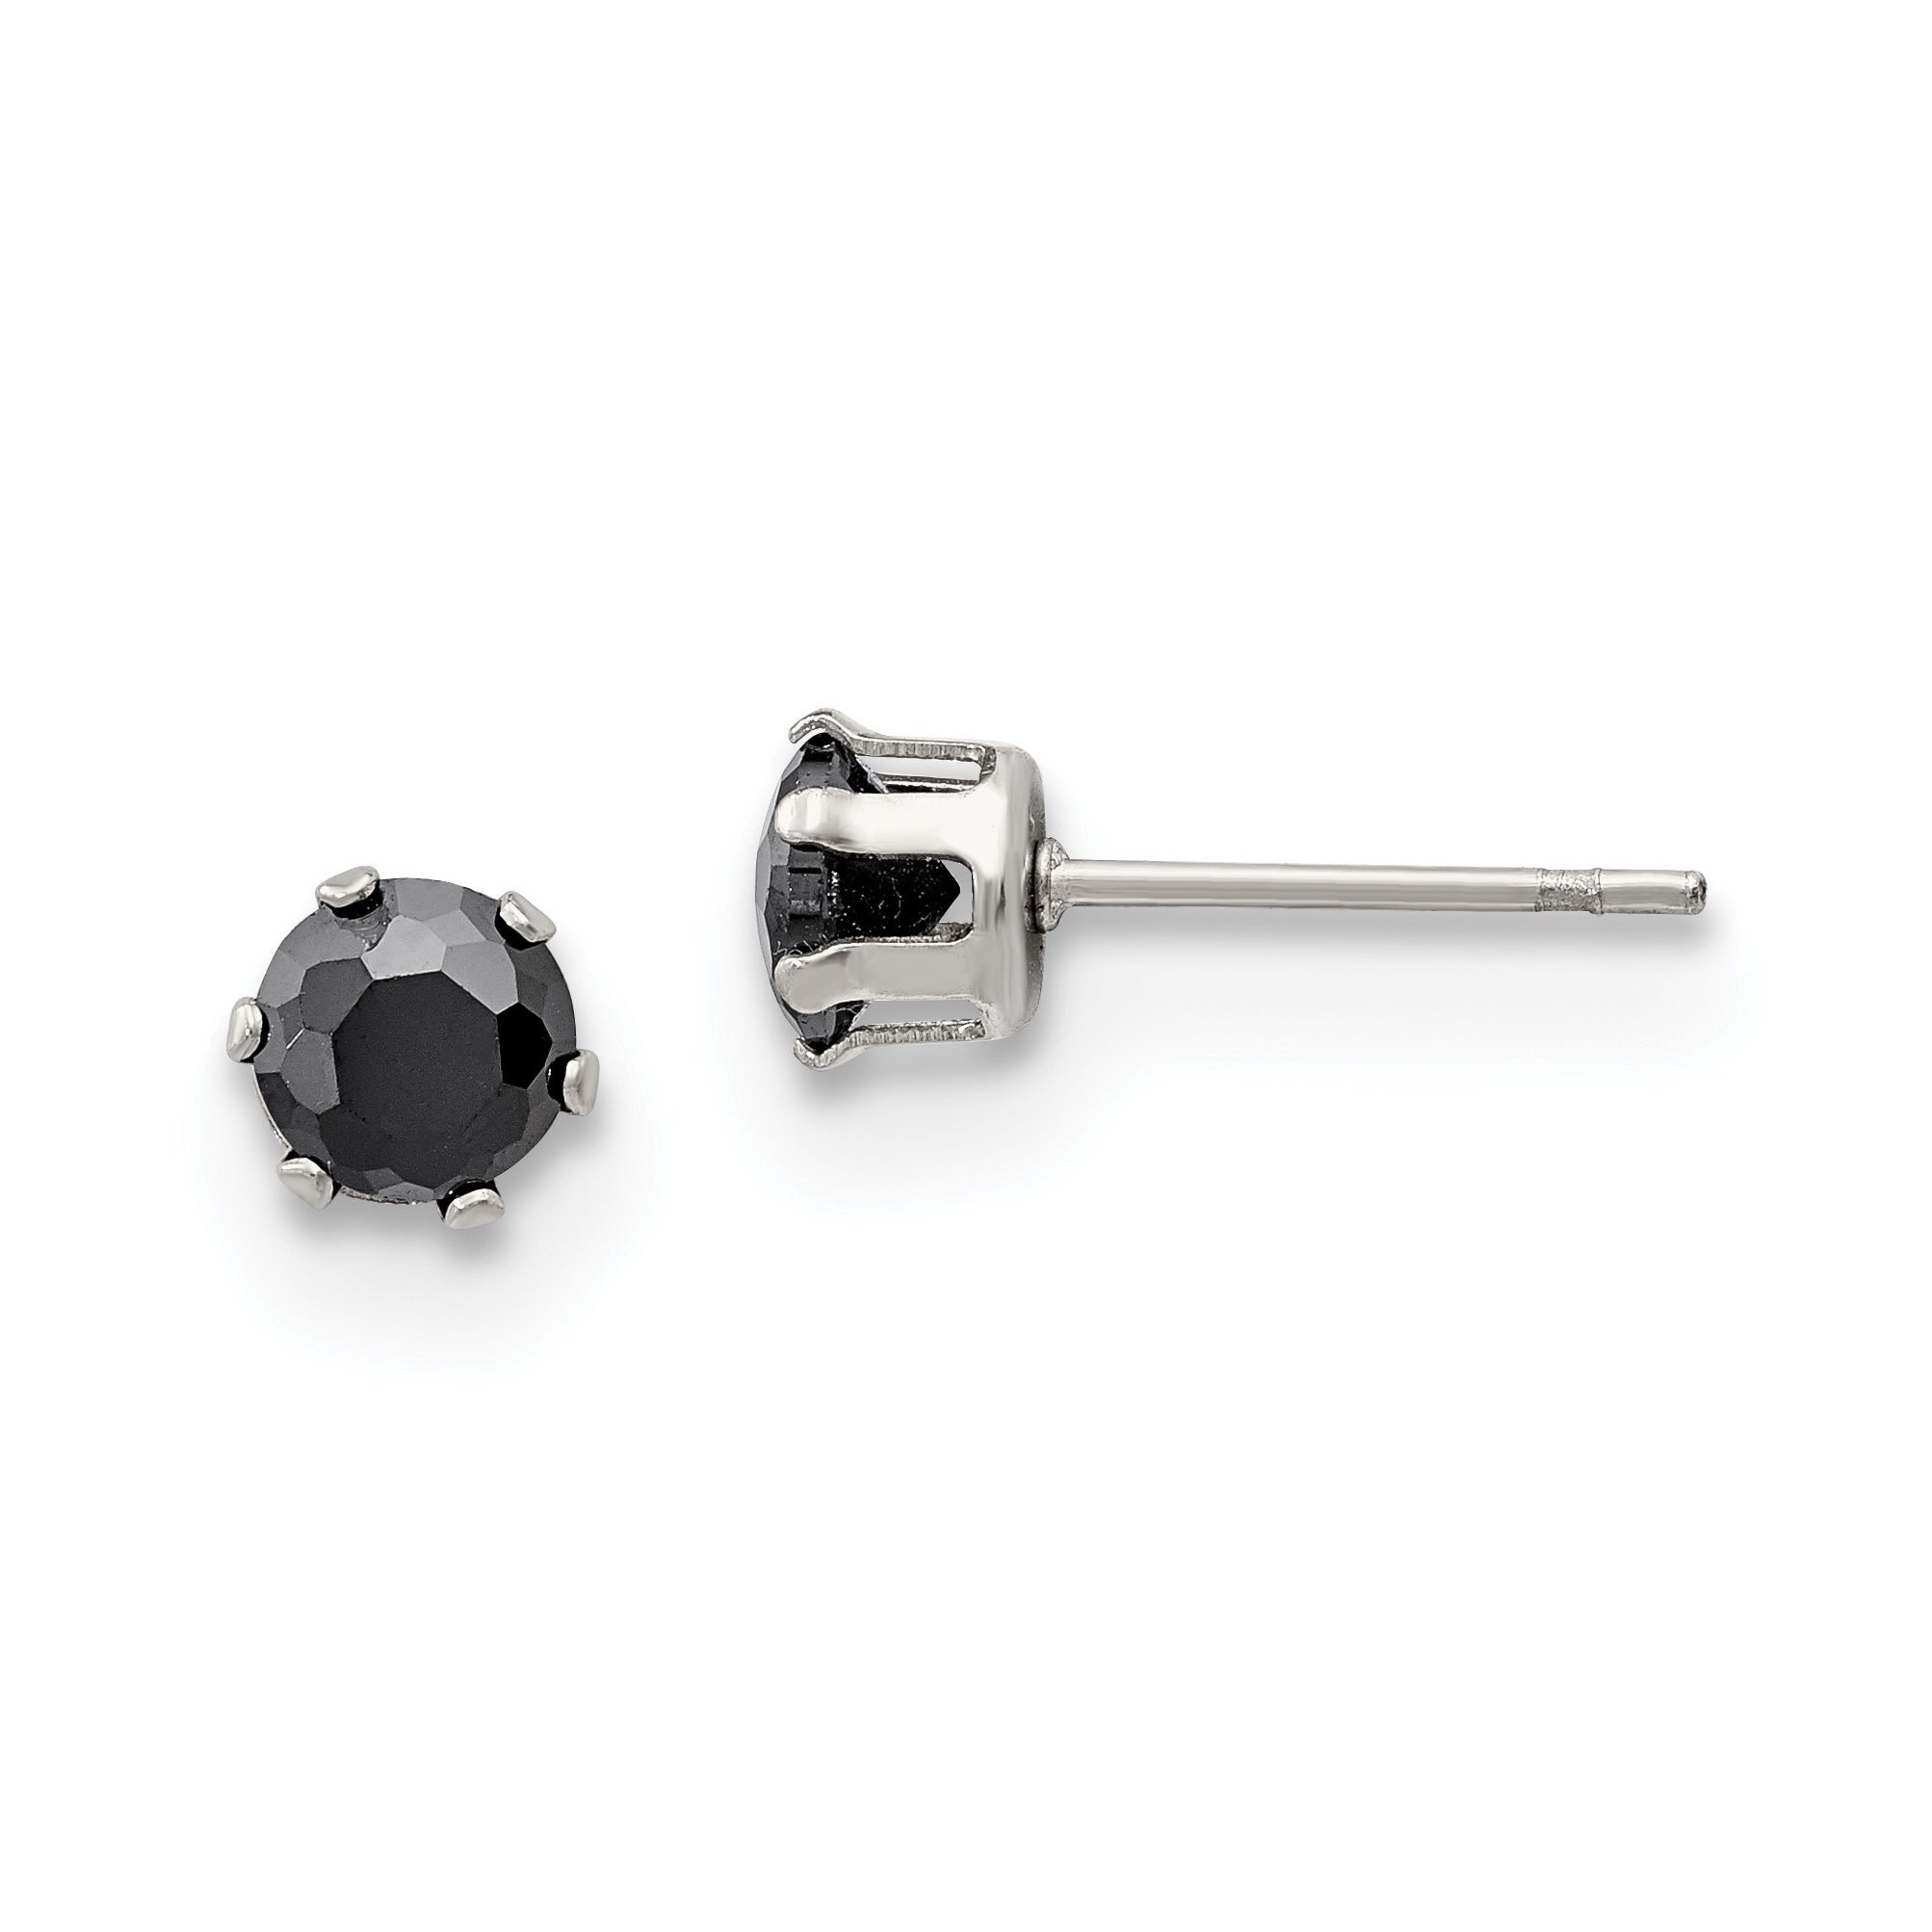 Stainless Steel Polished 5mm Round CZ Stud Post Earrings